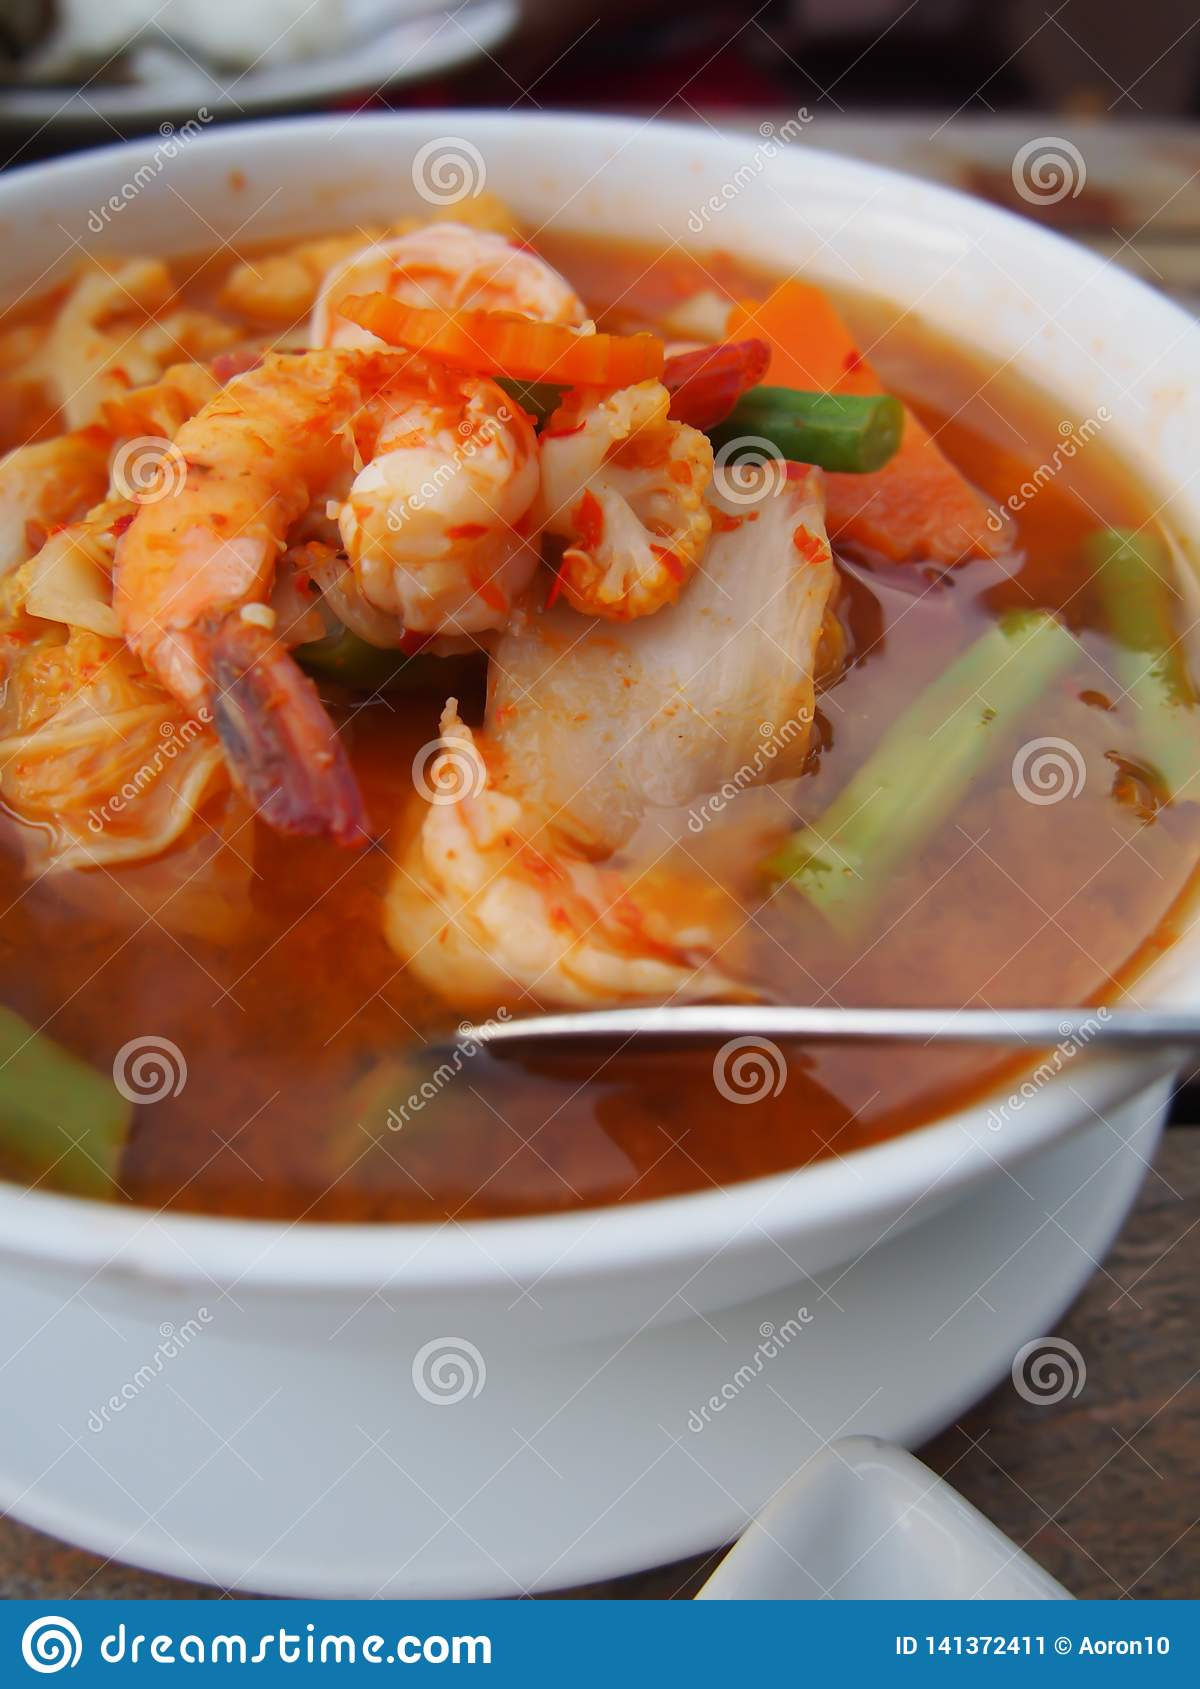 Sour curry with vegetables such as white cabbage and long bean and shrimp, Thai food.